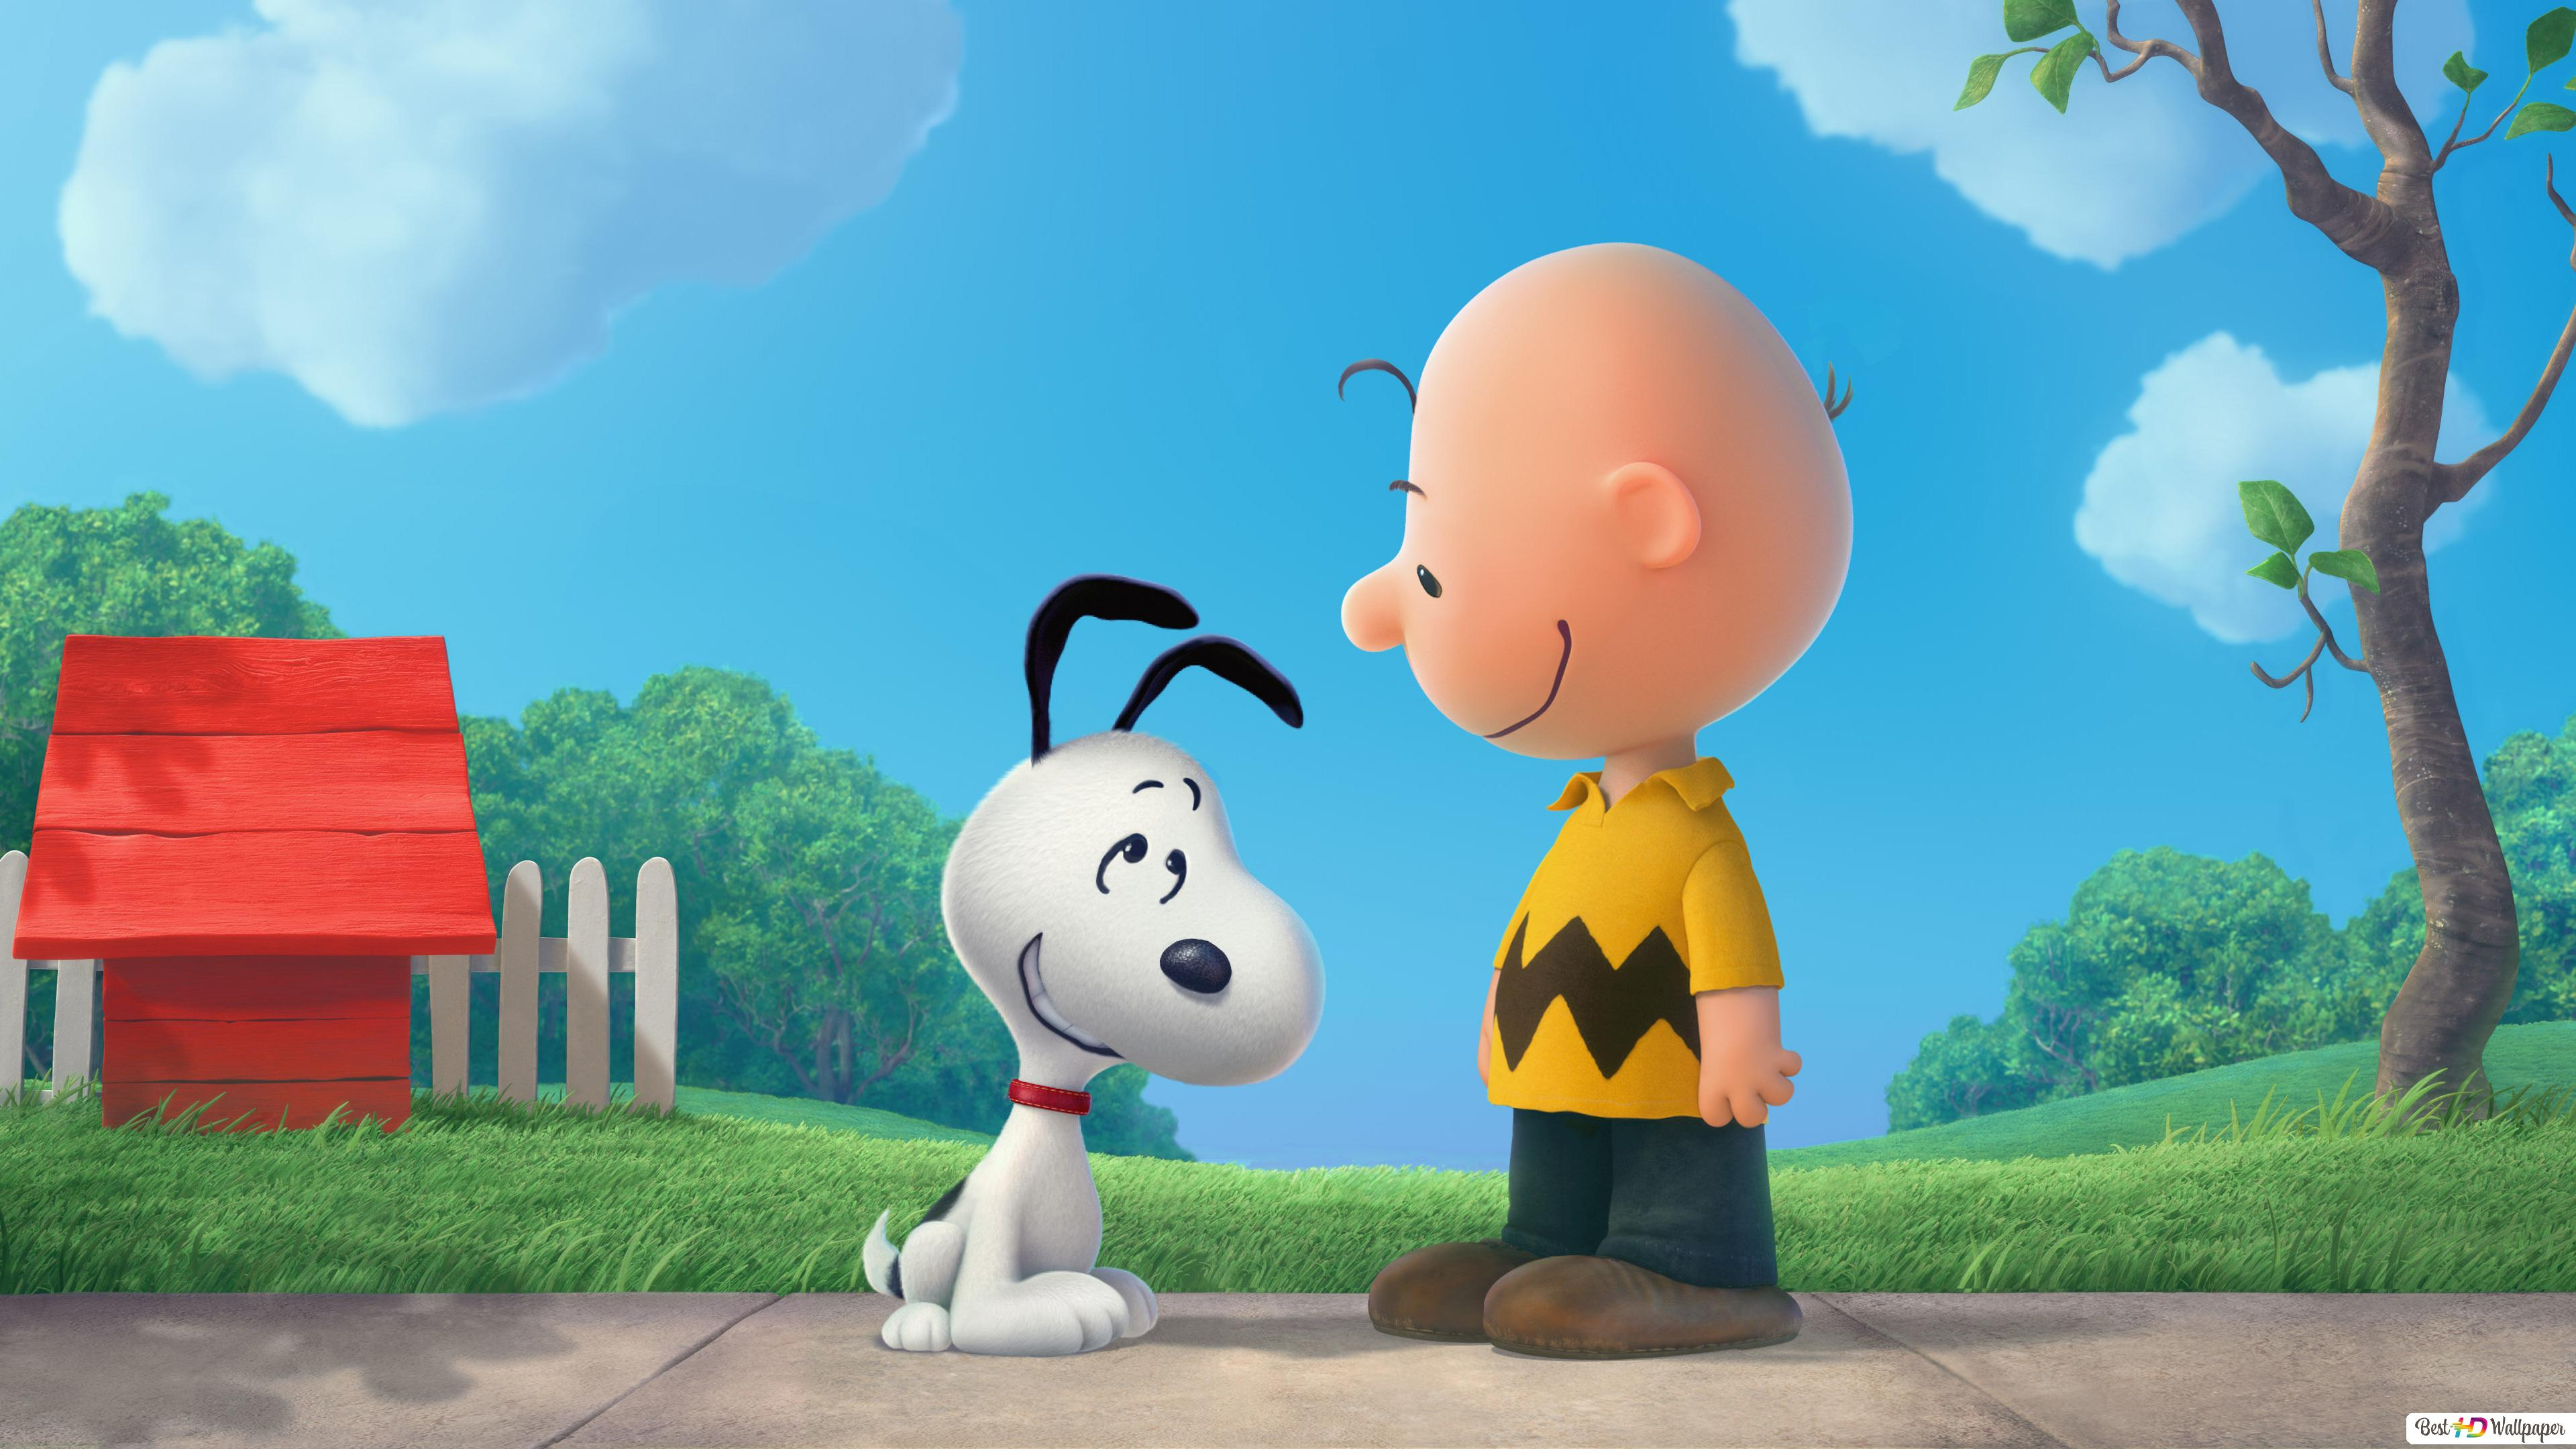 The Peanuts HD wallpaper download